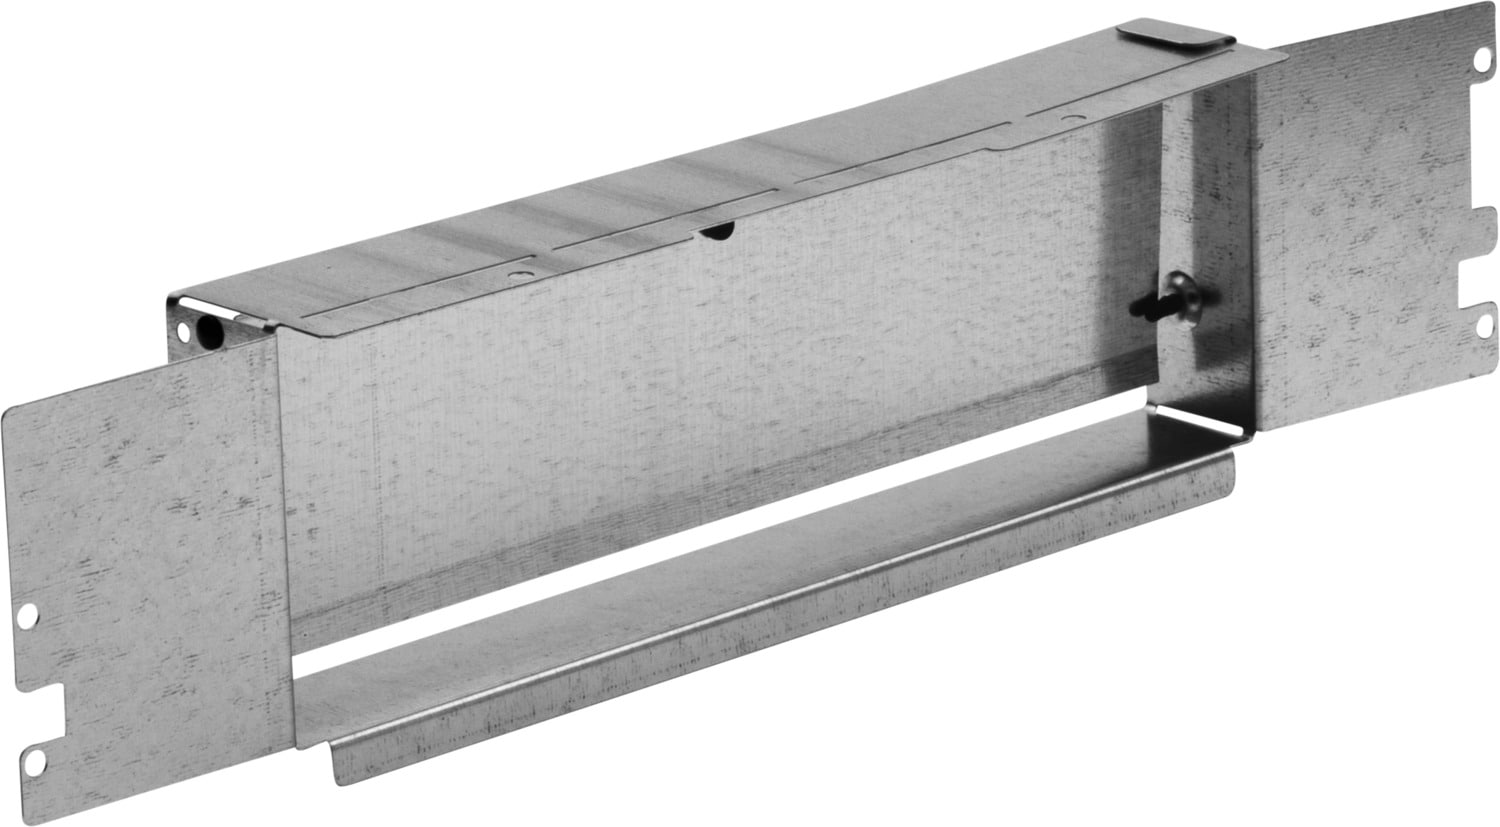 """Appliance Accessories - Broan 3.25"""" x 14"""" to 3.25"""" x 10"""" Adapter for Range Hoods"""